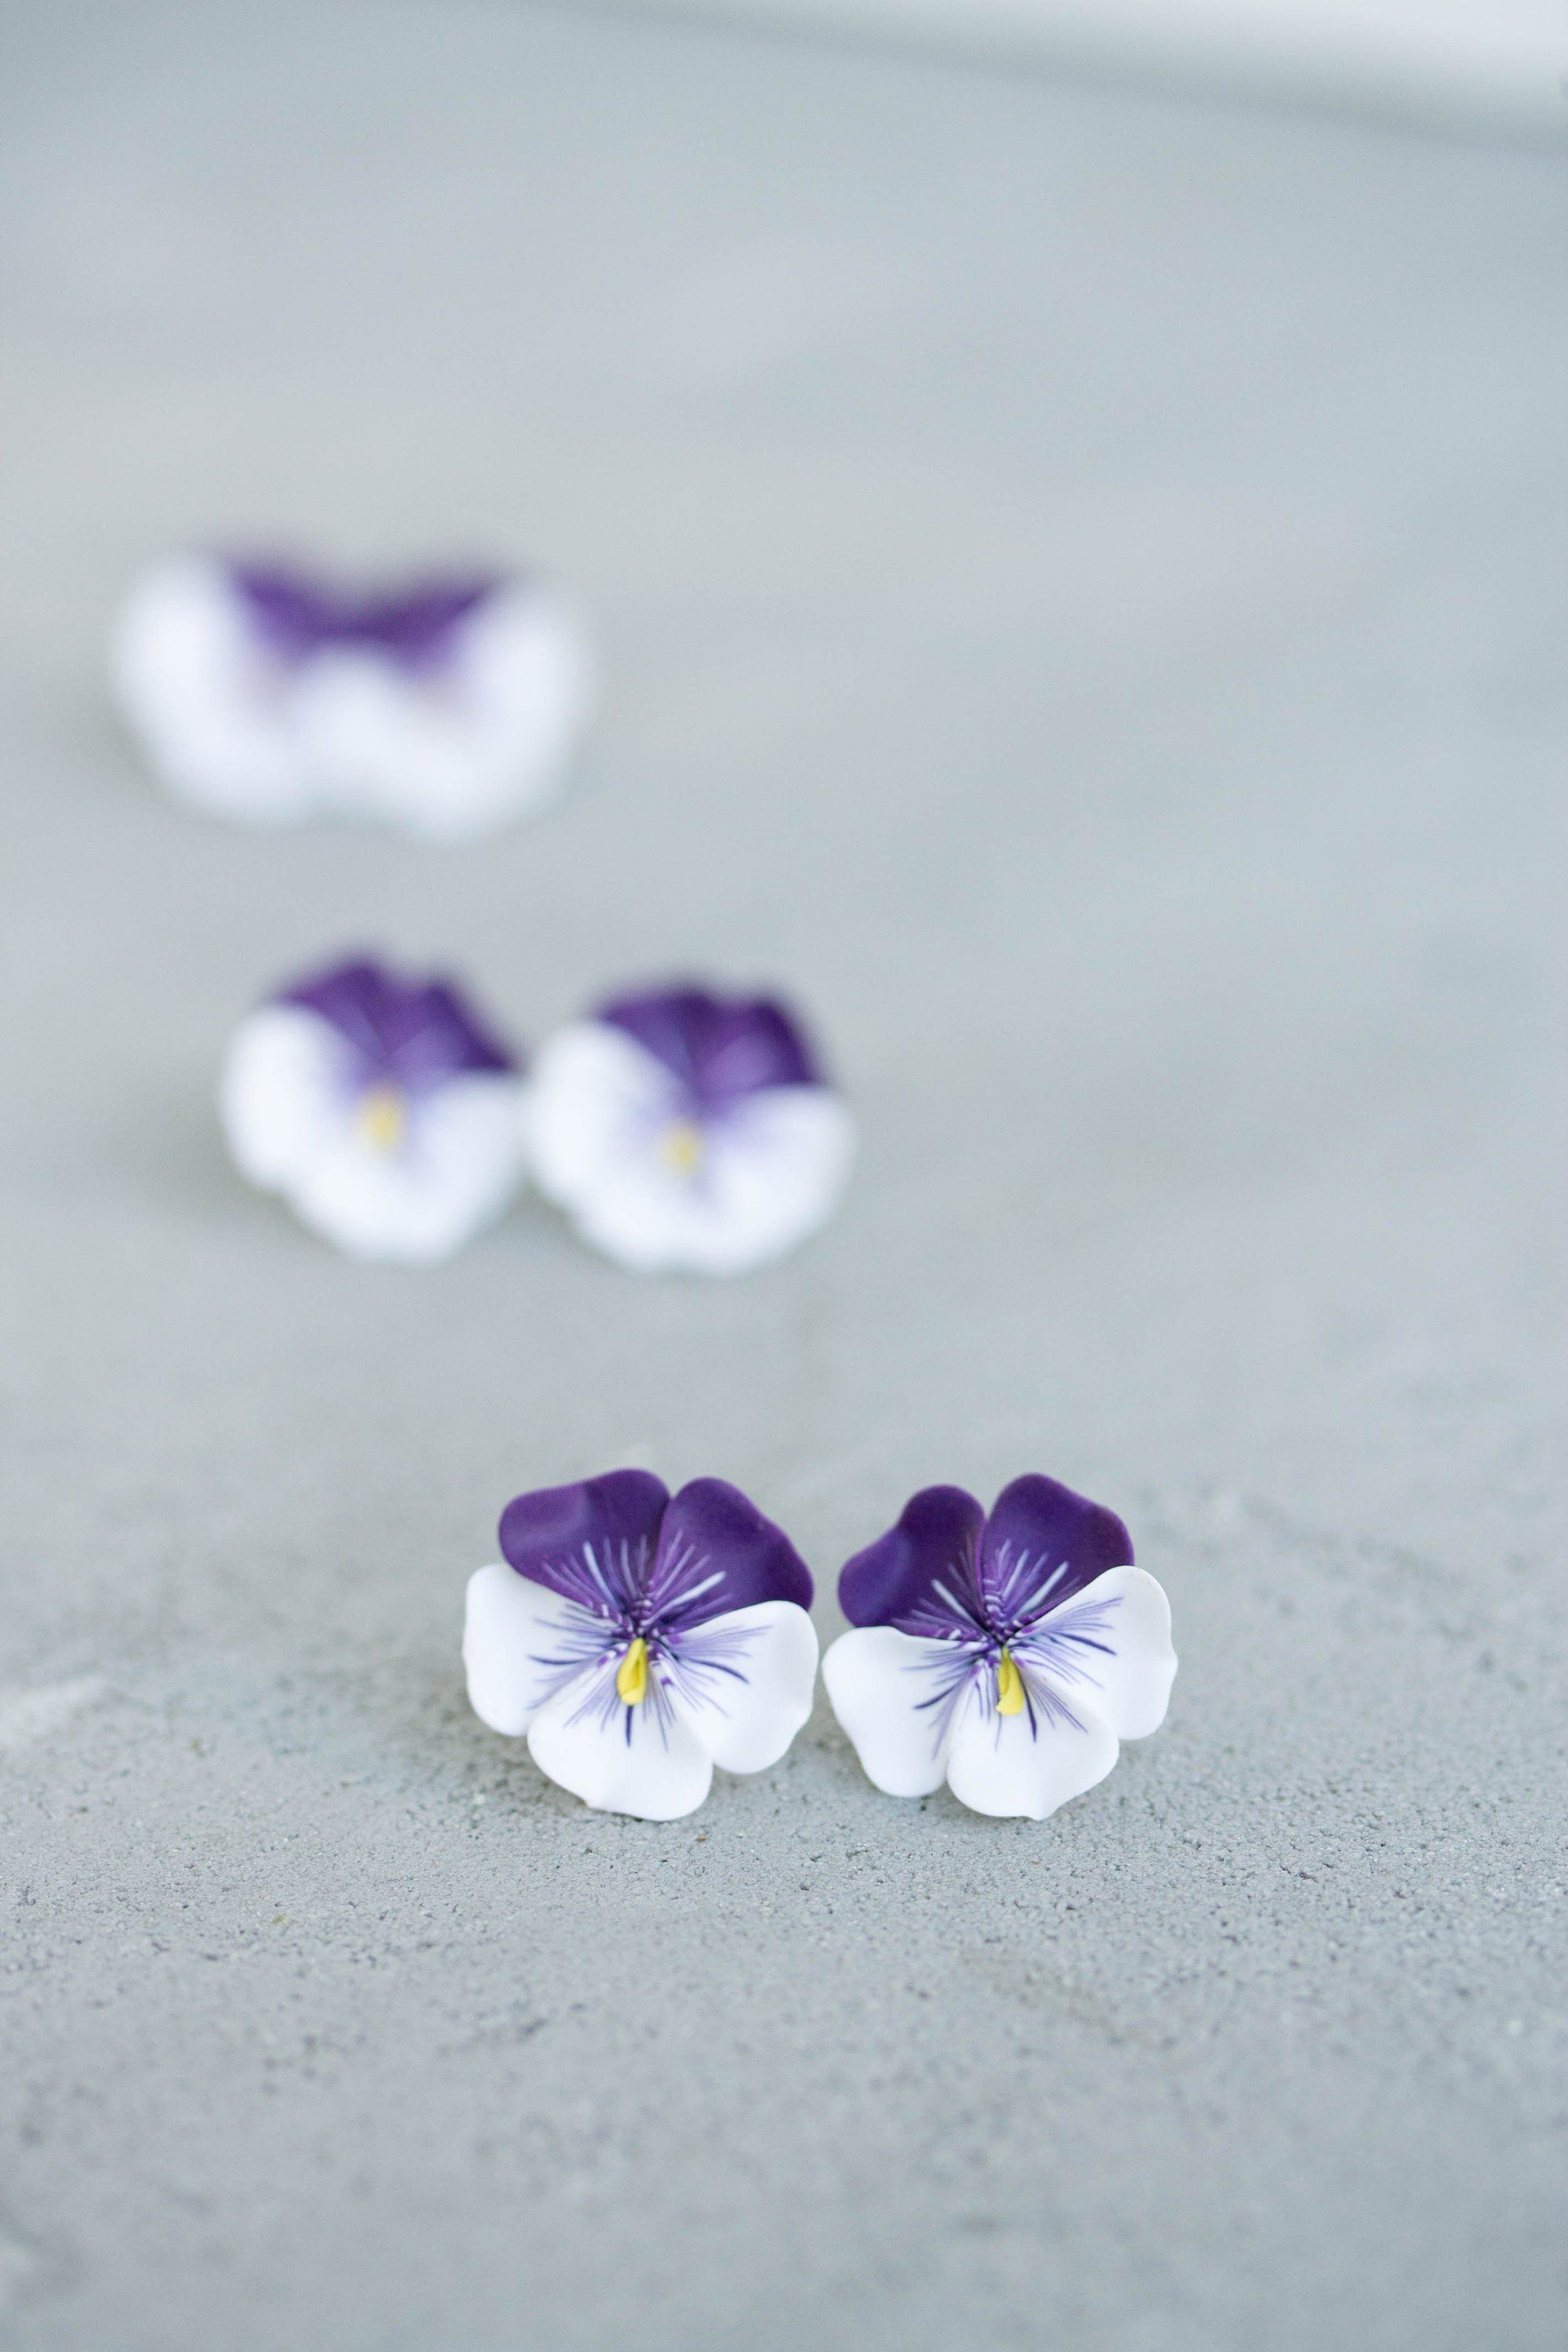 Pansy Earrings Flower Jewelry Clay Earrings Flower Stud Earrings Bridal Earrings Hypoallergenic Studs Bridal Gifts Floral Jewellery Pansies